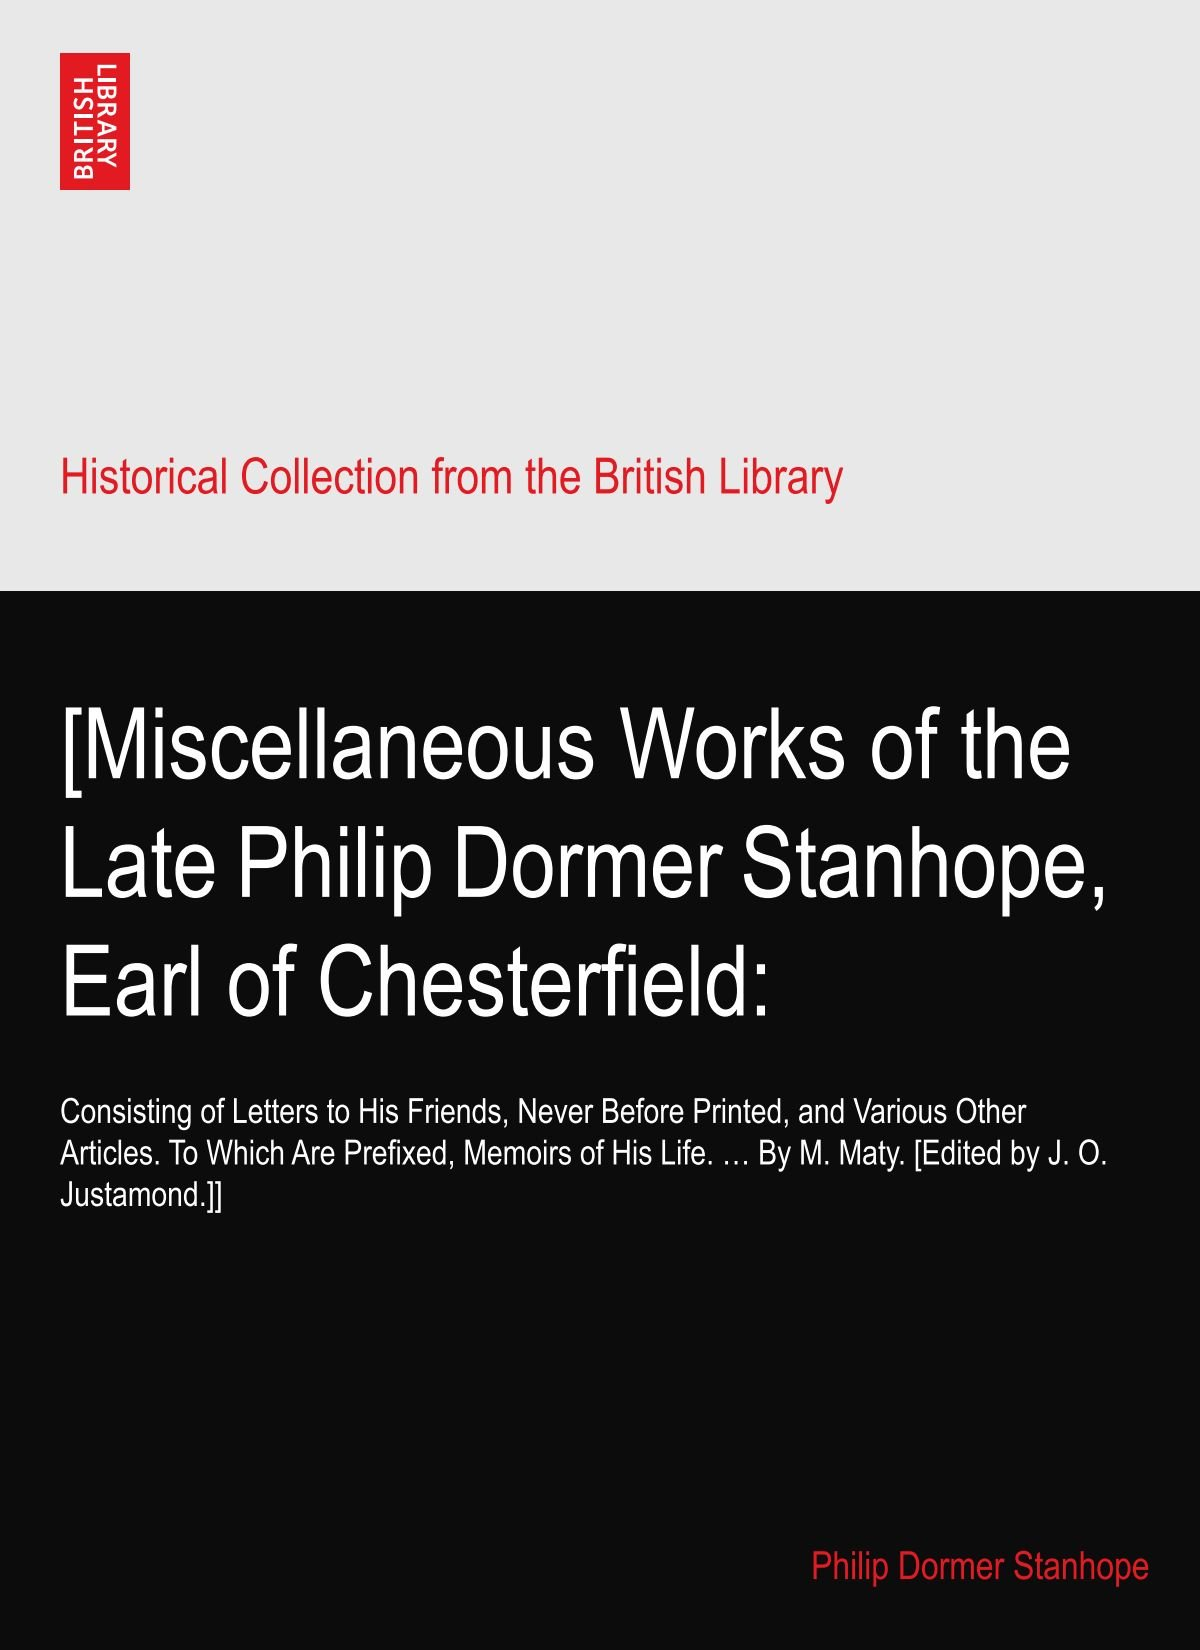 Download [Miscellaneous Works of the Late Philip Dormer Stanhope, Earl of Chesterfield:: Consisting of Letters to His Friends, Never Before Printed, and ... … By M. Maty. [Edited by J. O. Justamond.]] ebook